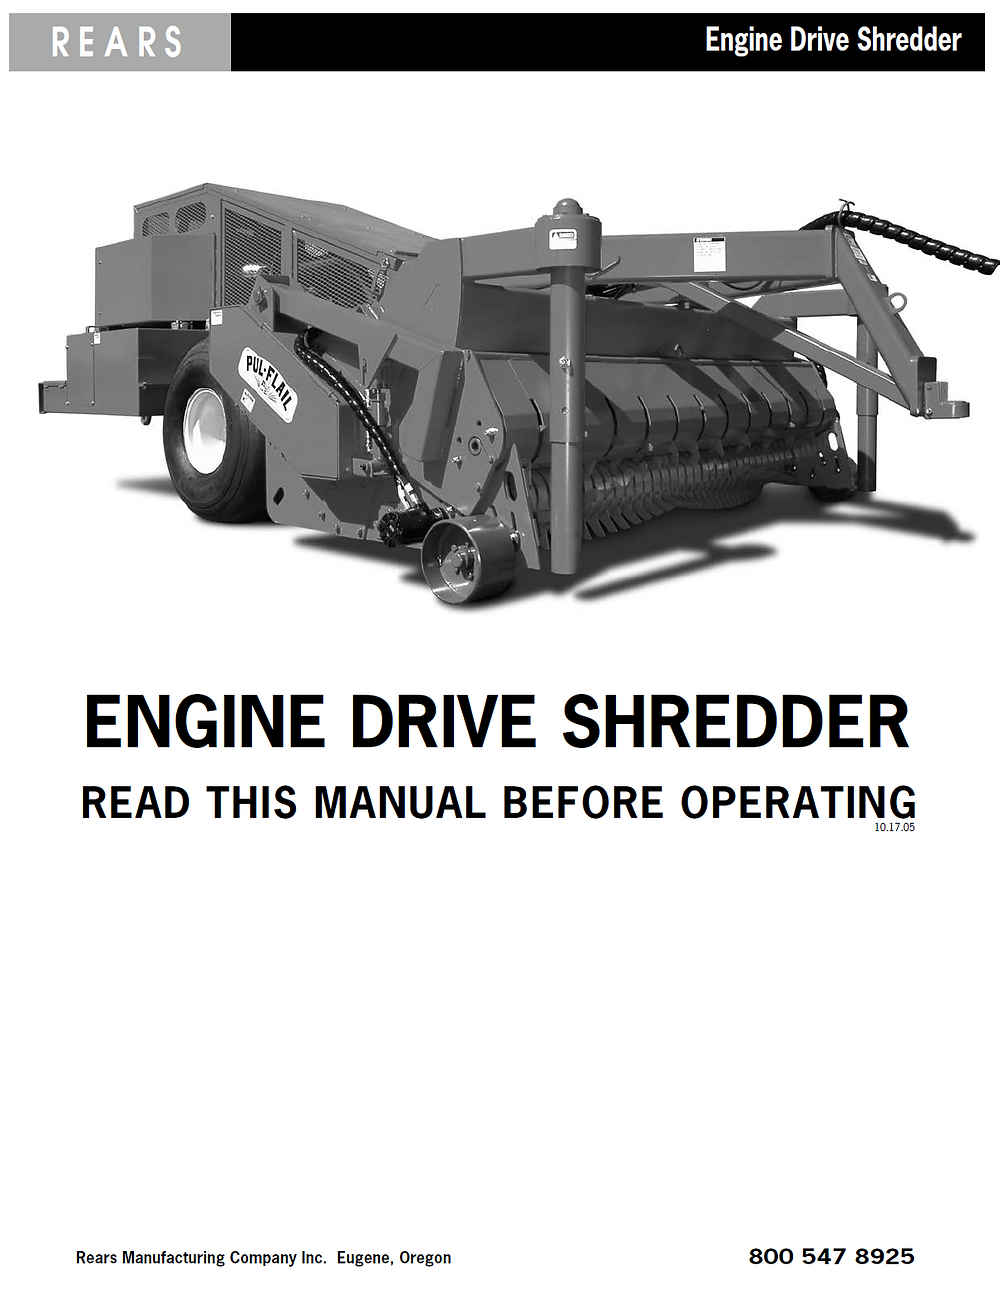 Rears Engine Drive Shredder Manual